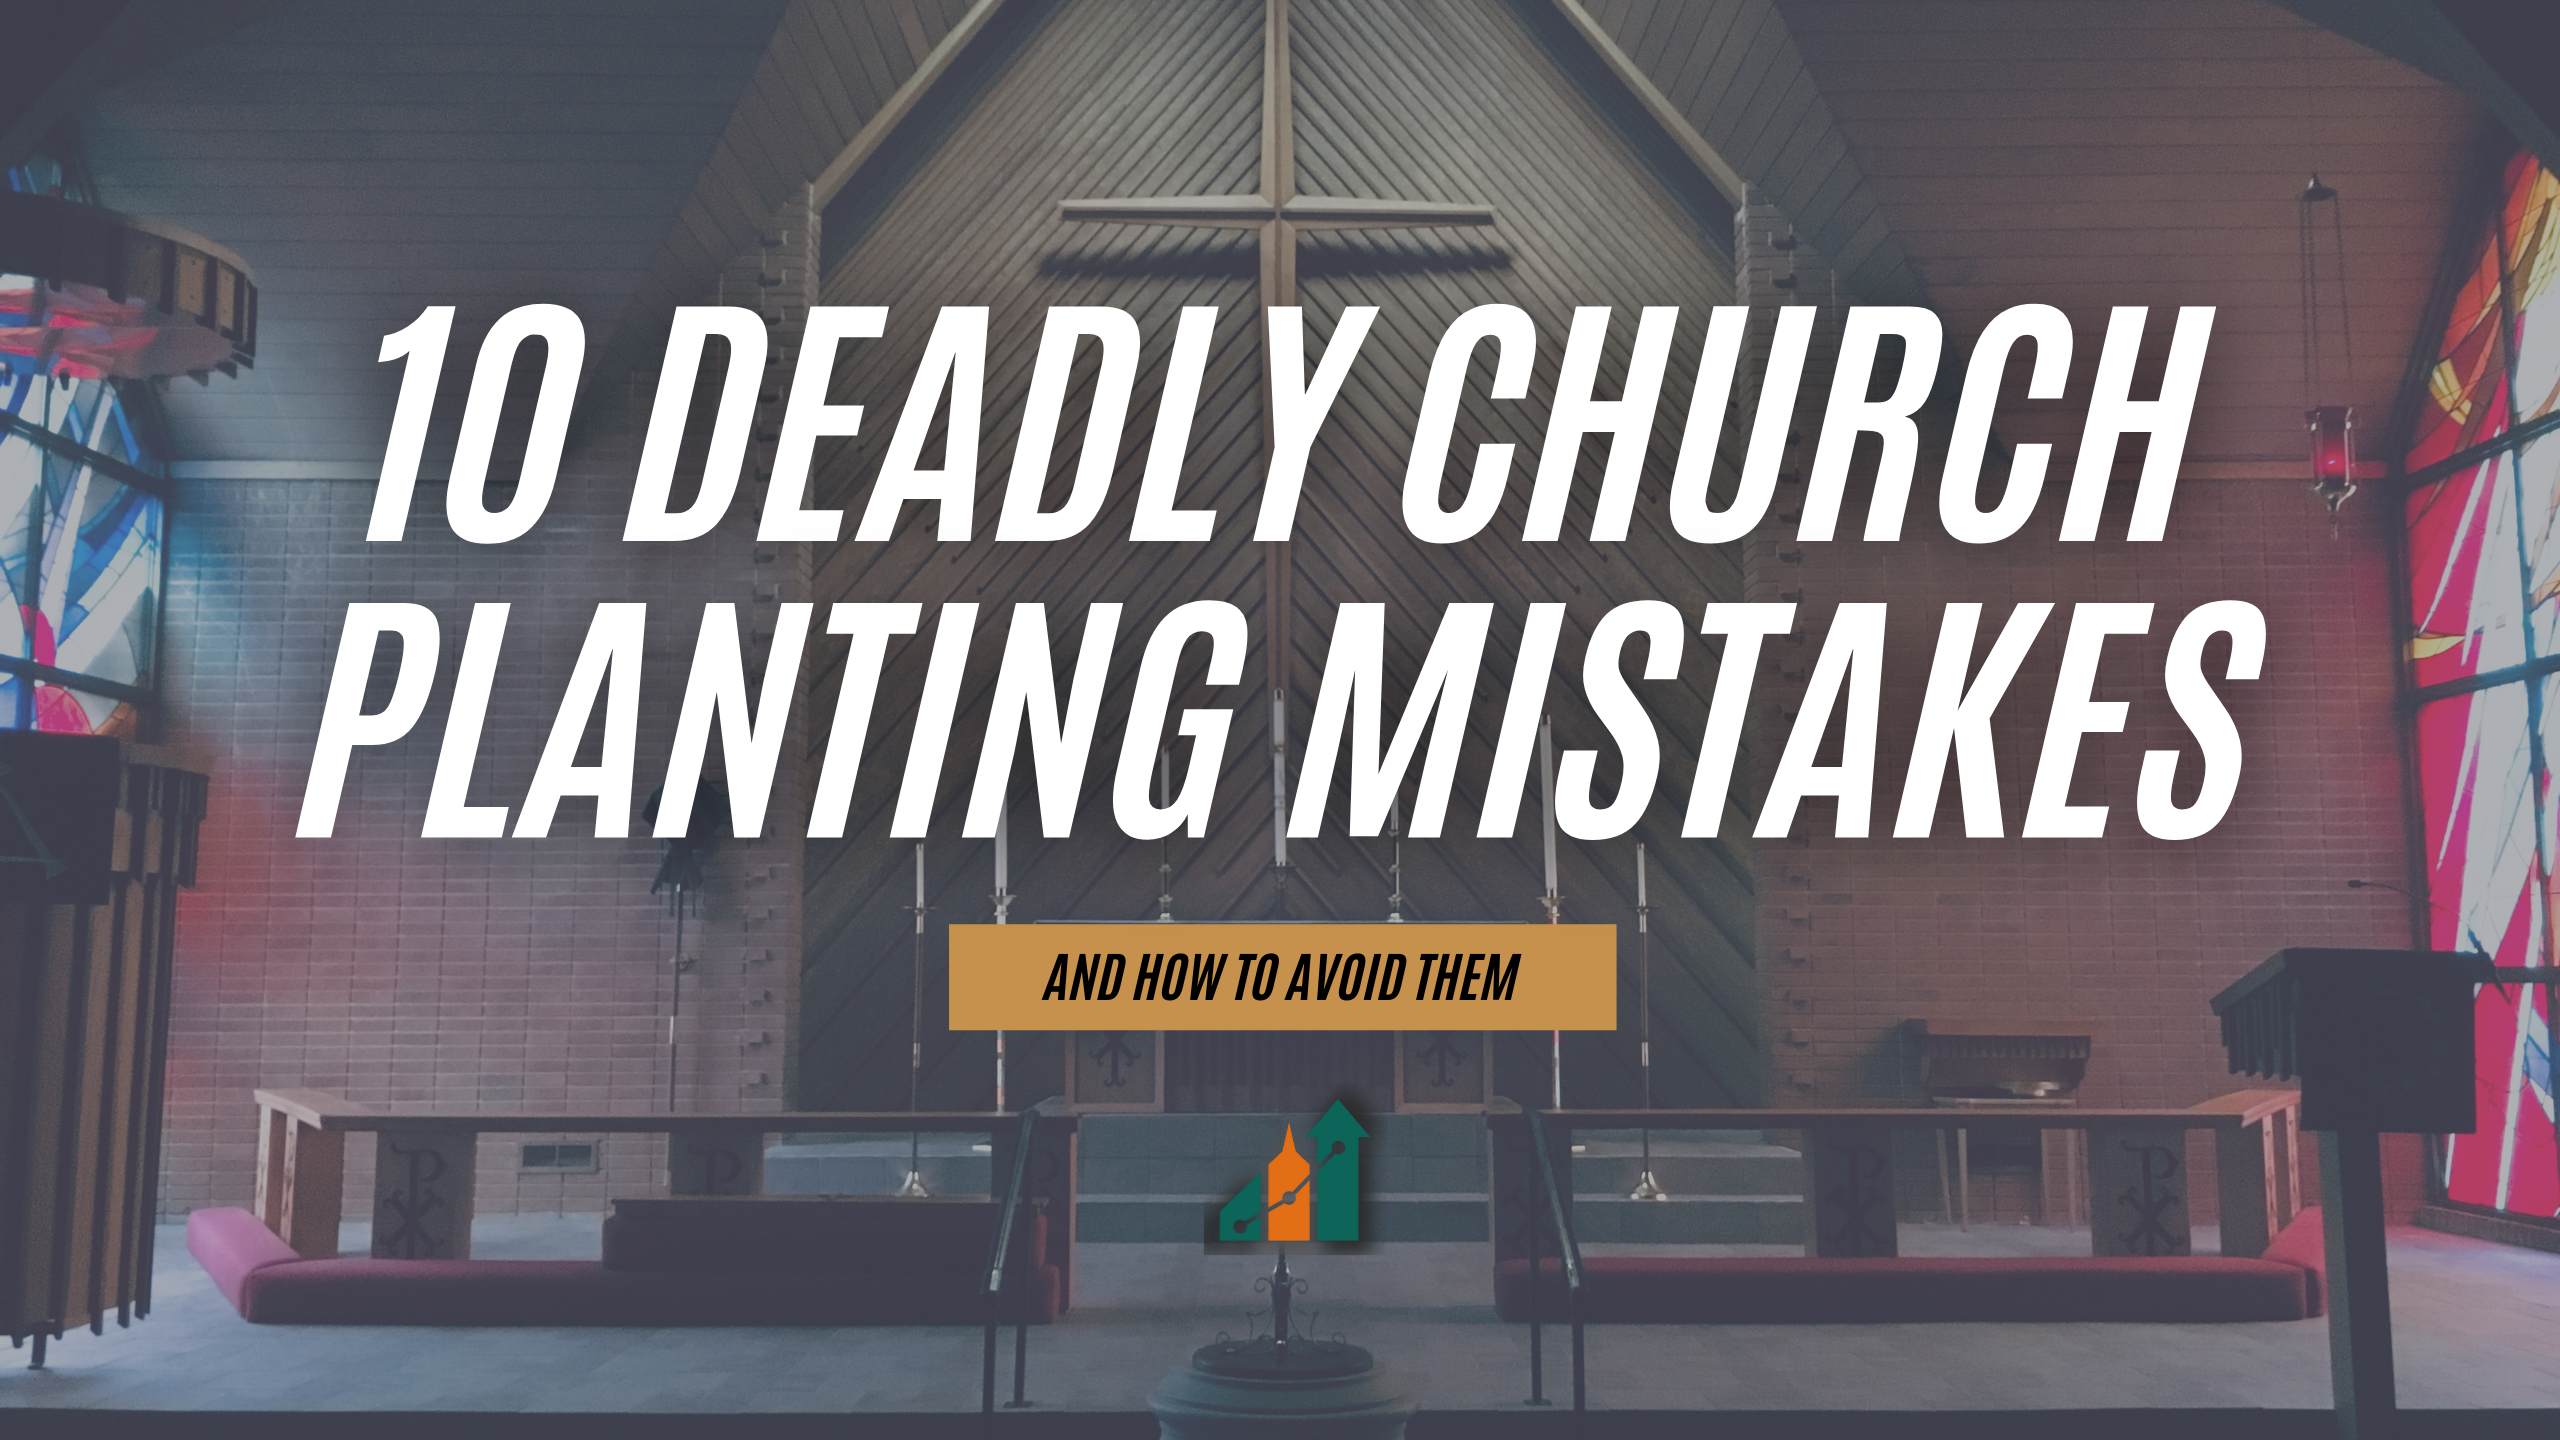 10-deadly-church-planting-mistakes_header-image